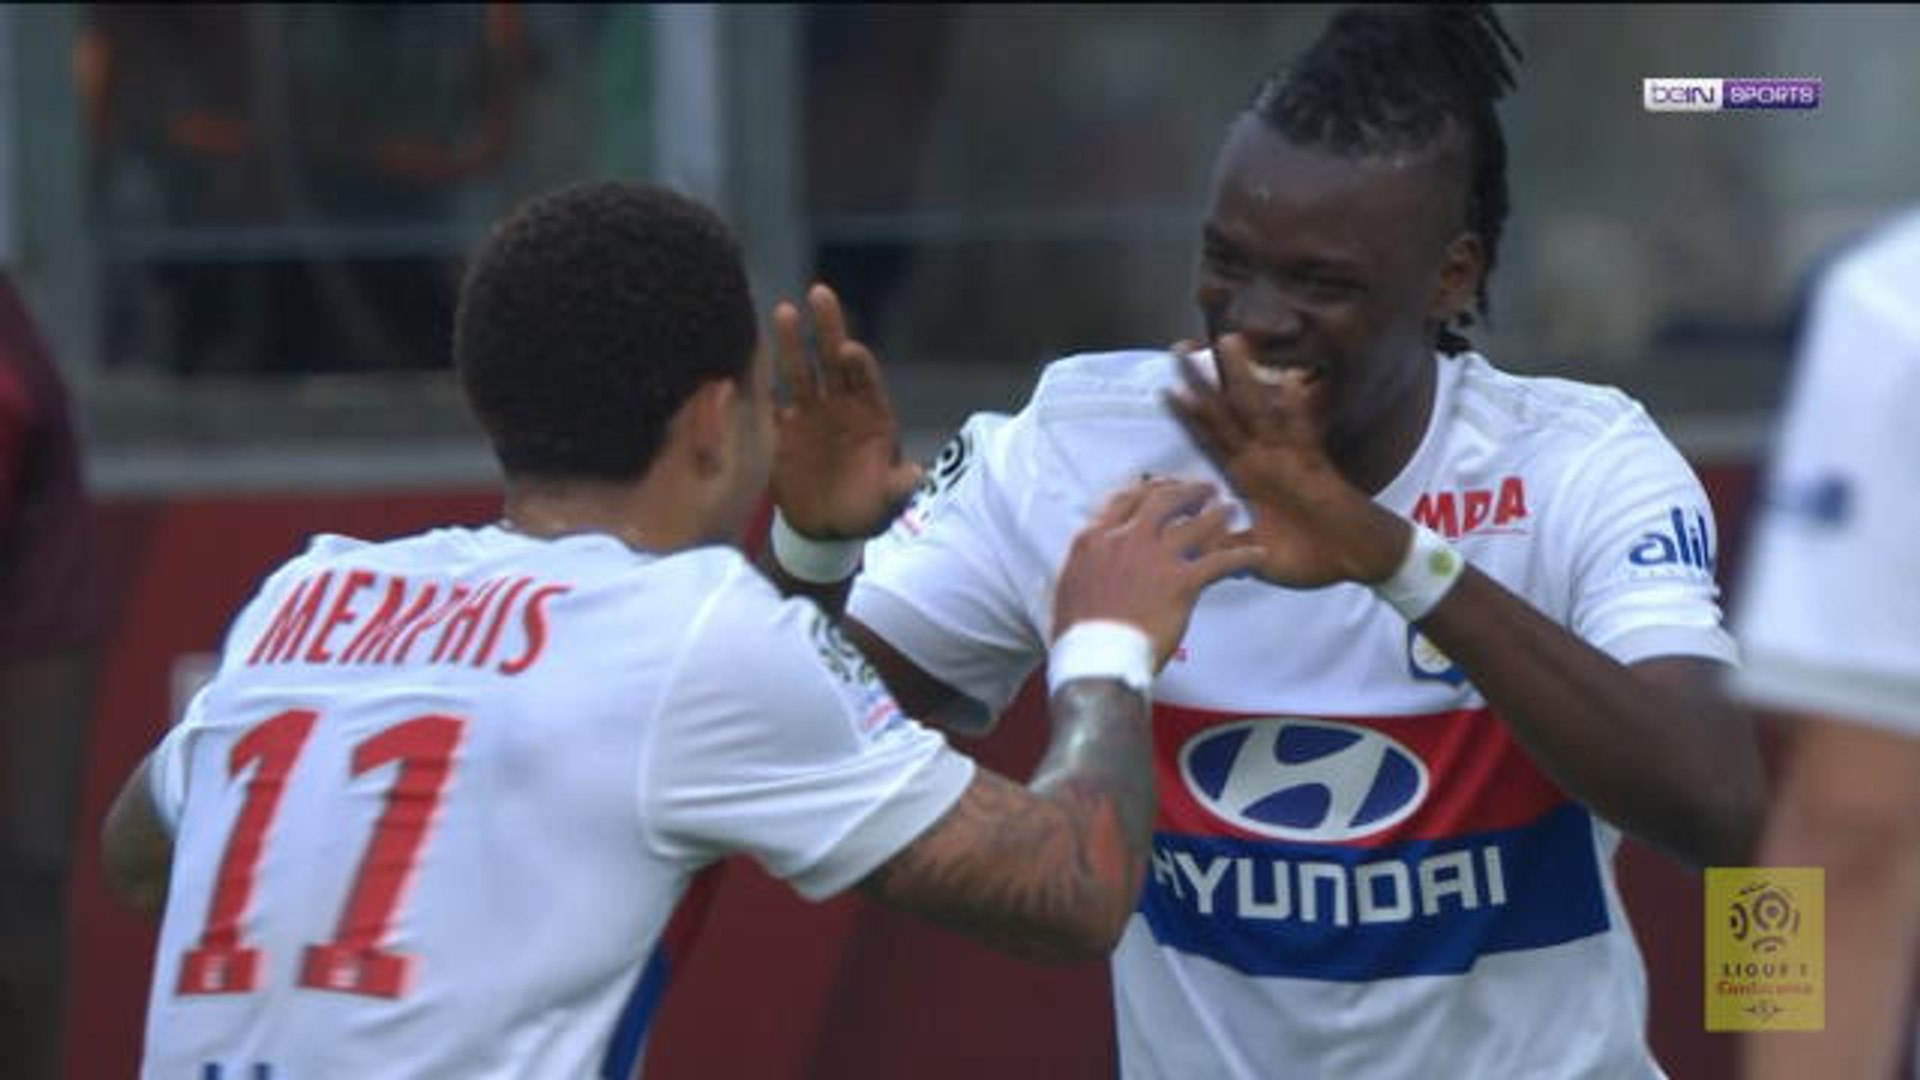 Ligue1 : Miss him now United? Depay demolishes Metz with four assists